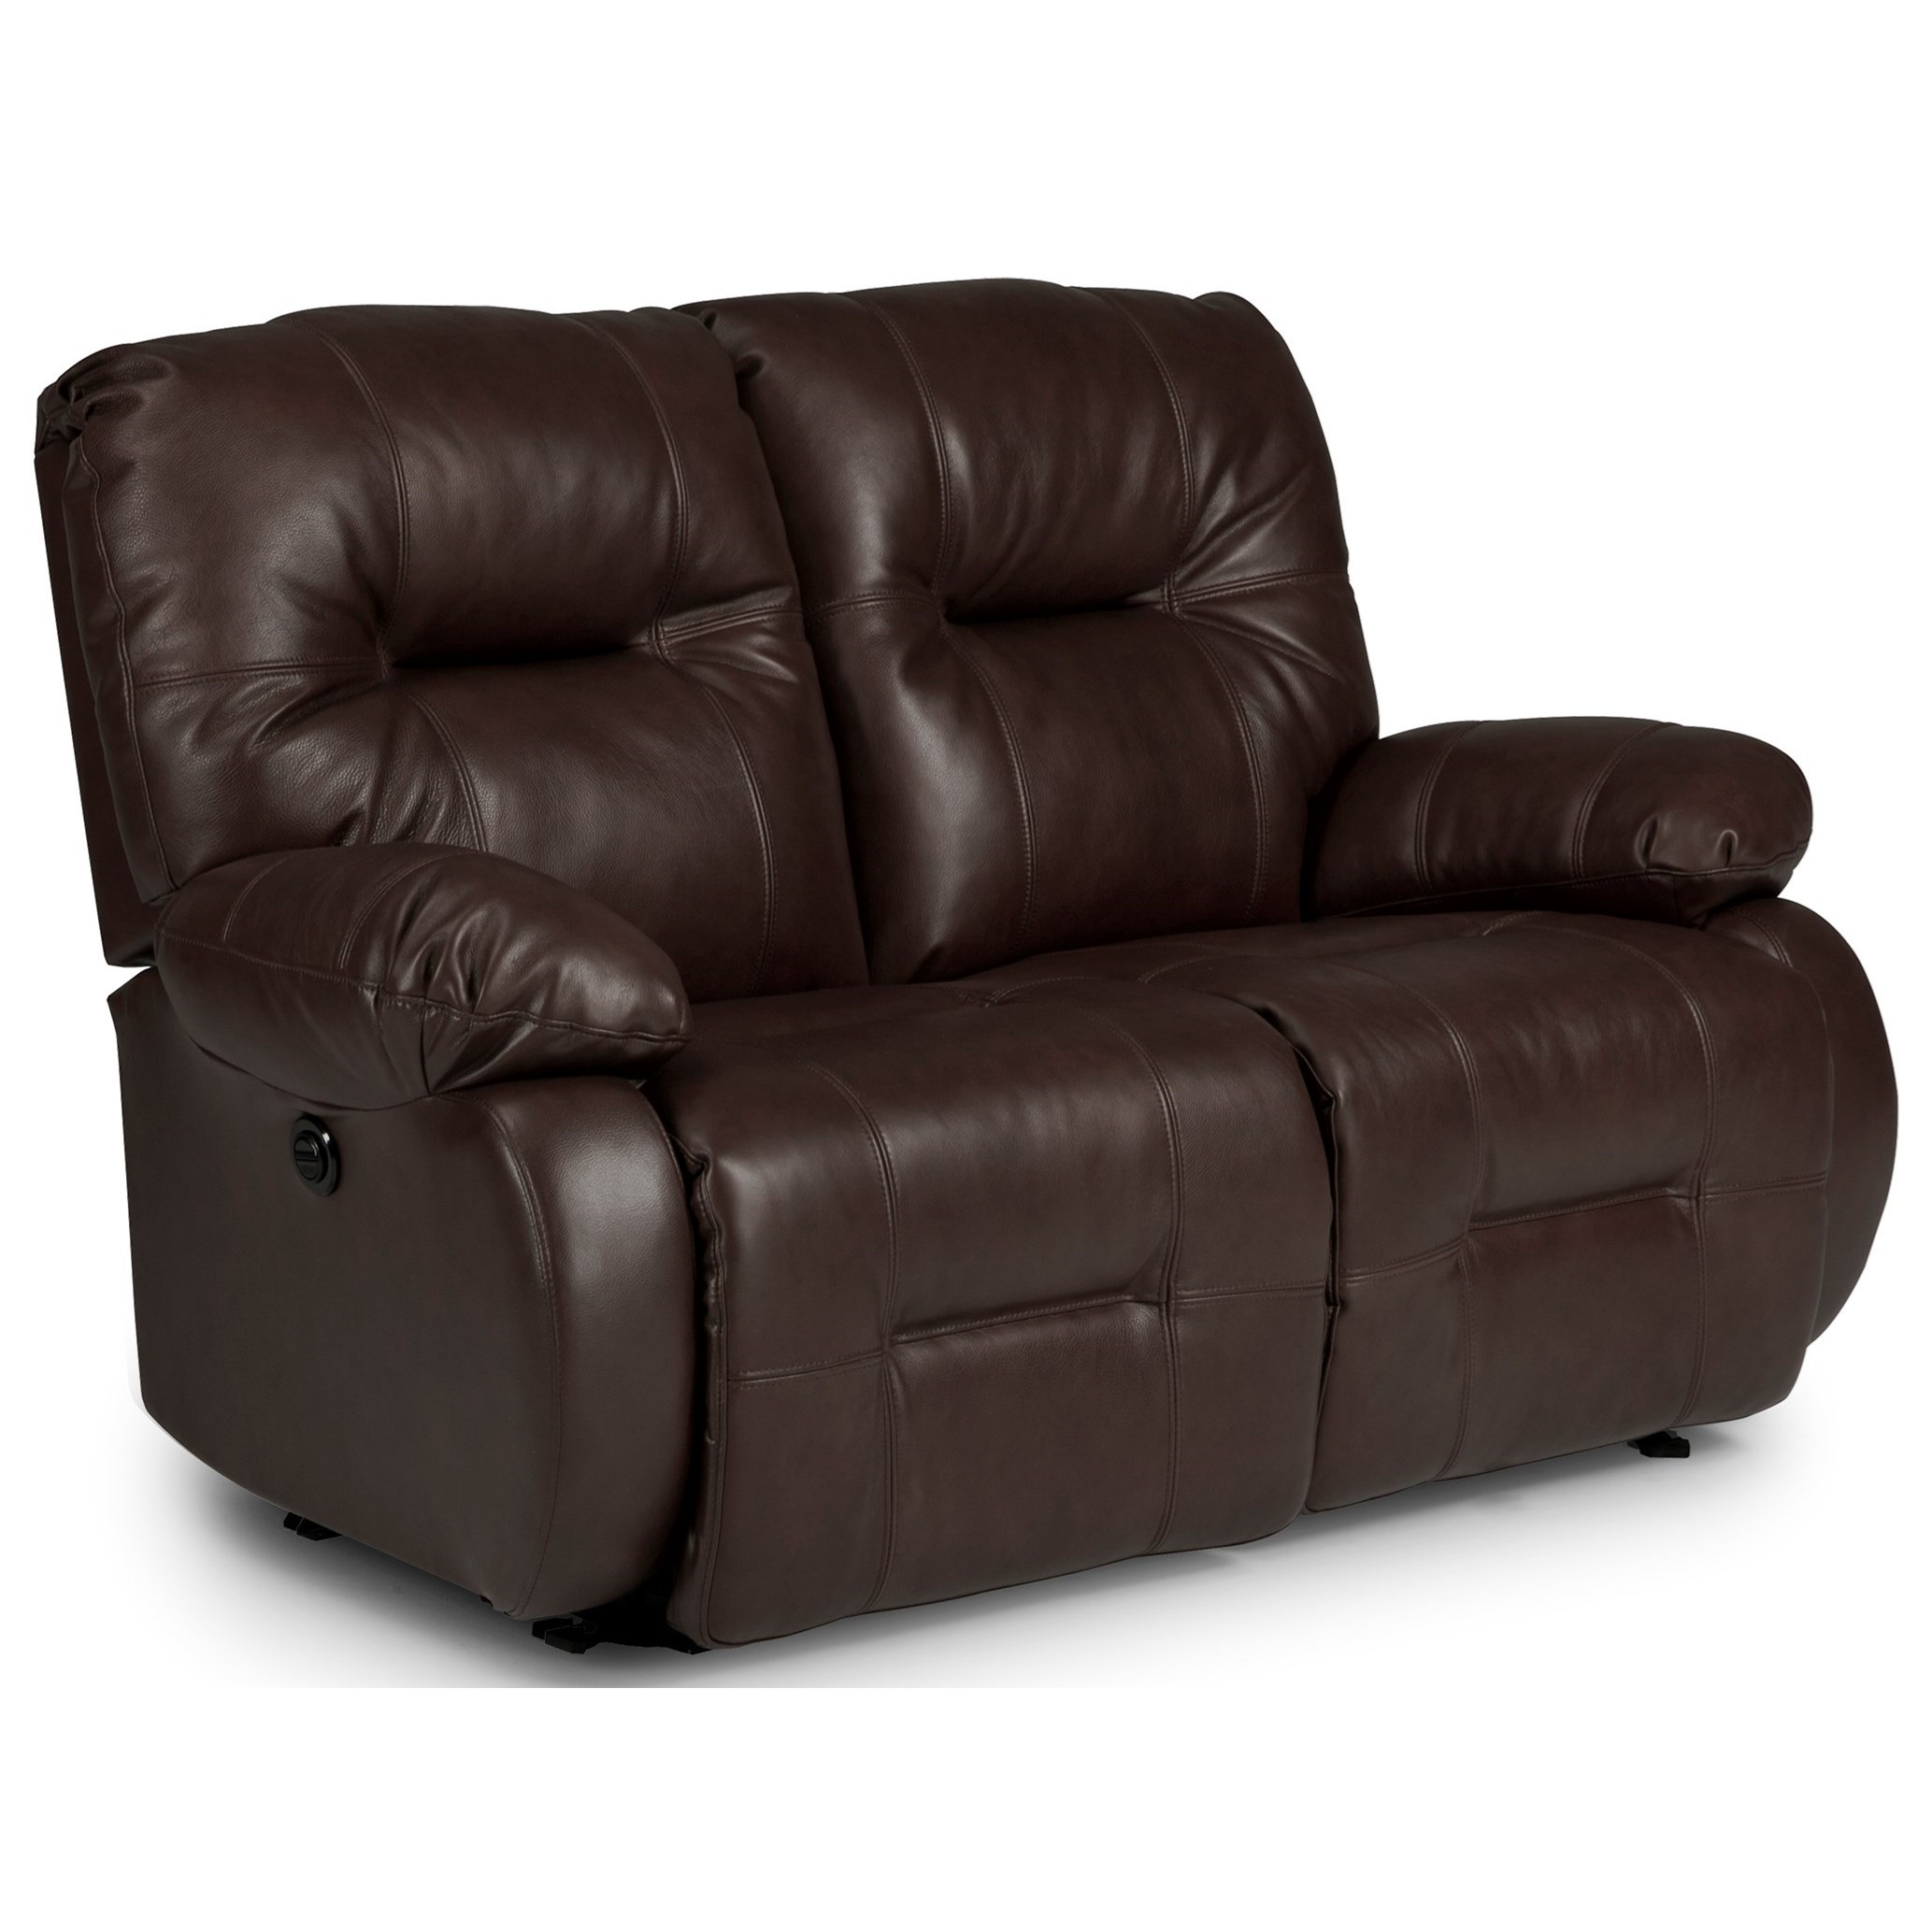 Best home furnishings brinley 2 l700cp4 brinley space for Hudsons furniture